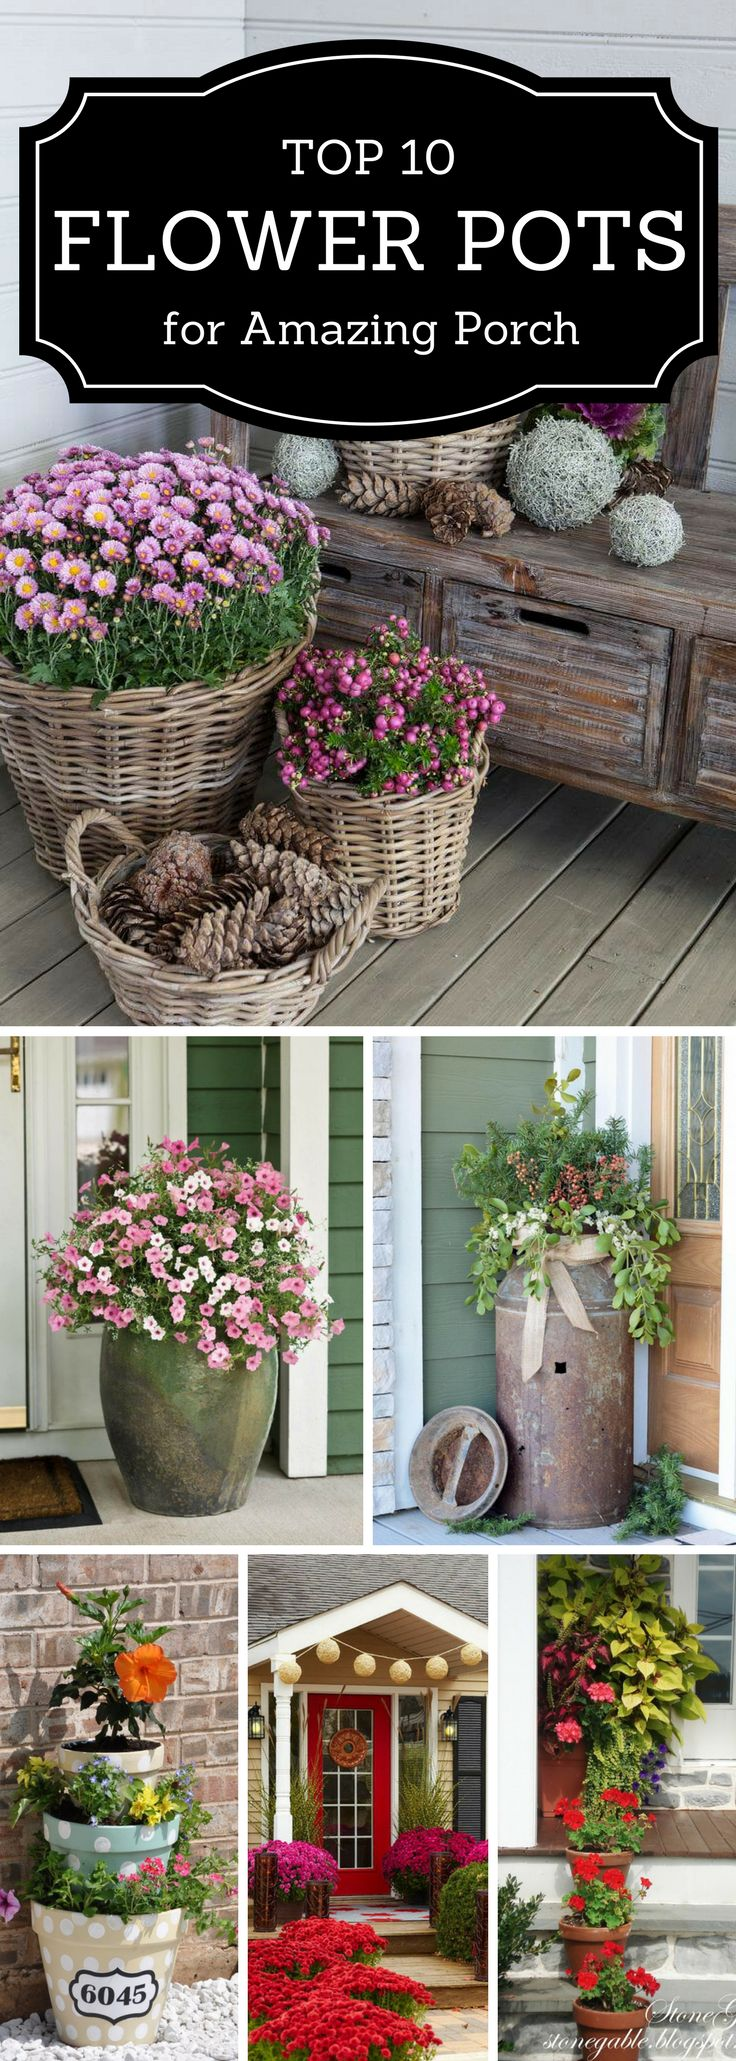 10 More Inspiring Ideas For Recycled And DIY Planters | thoribuzz.info